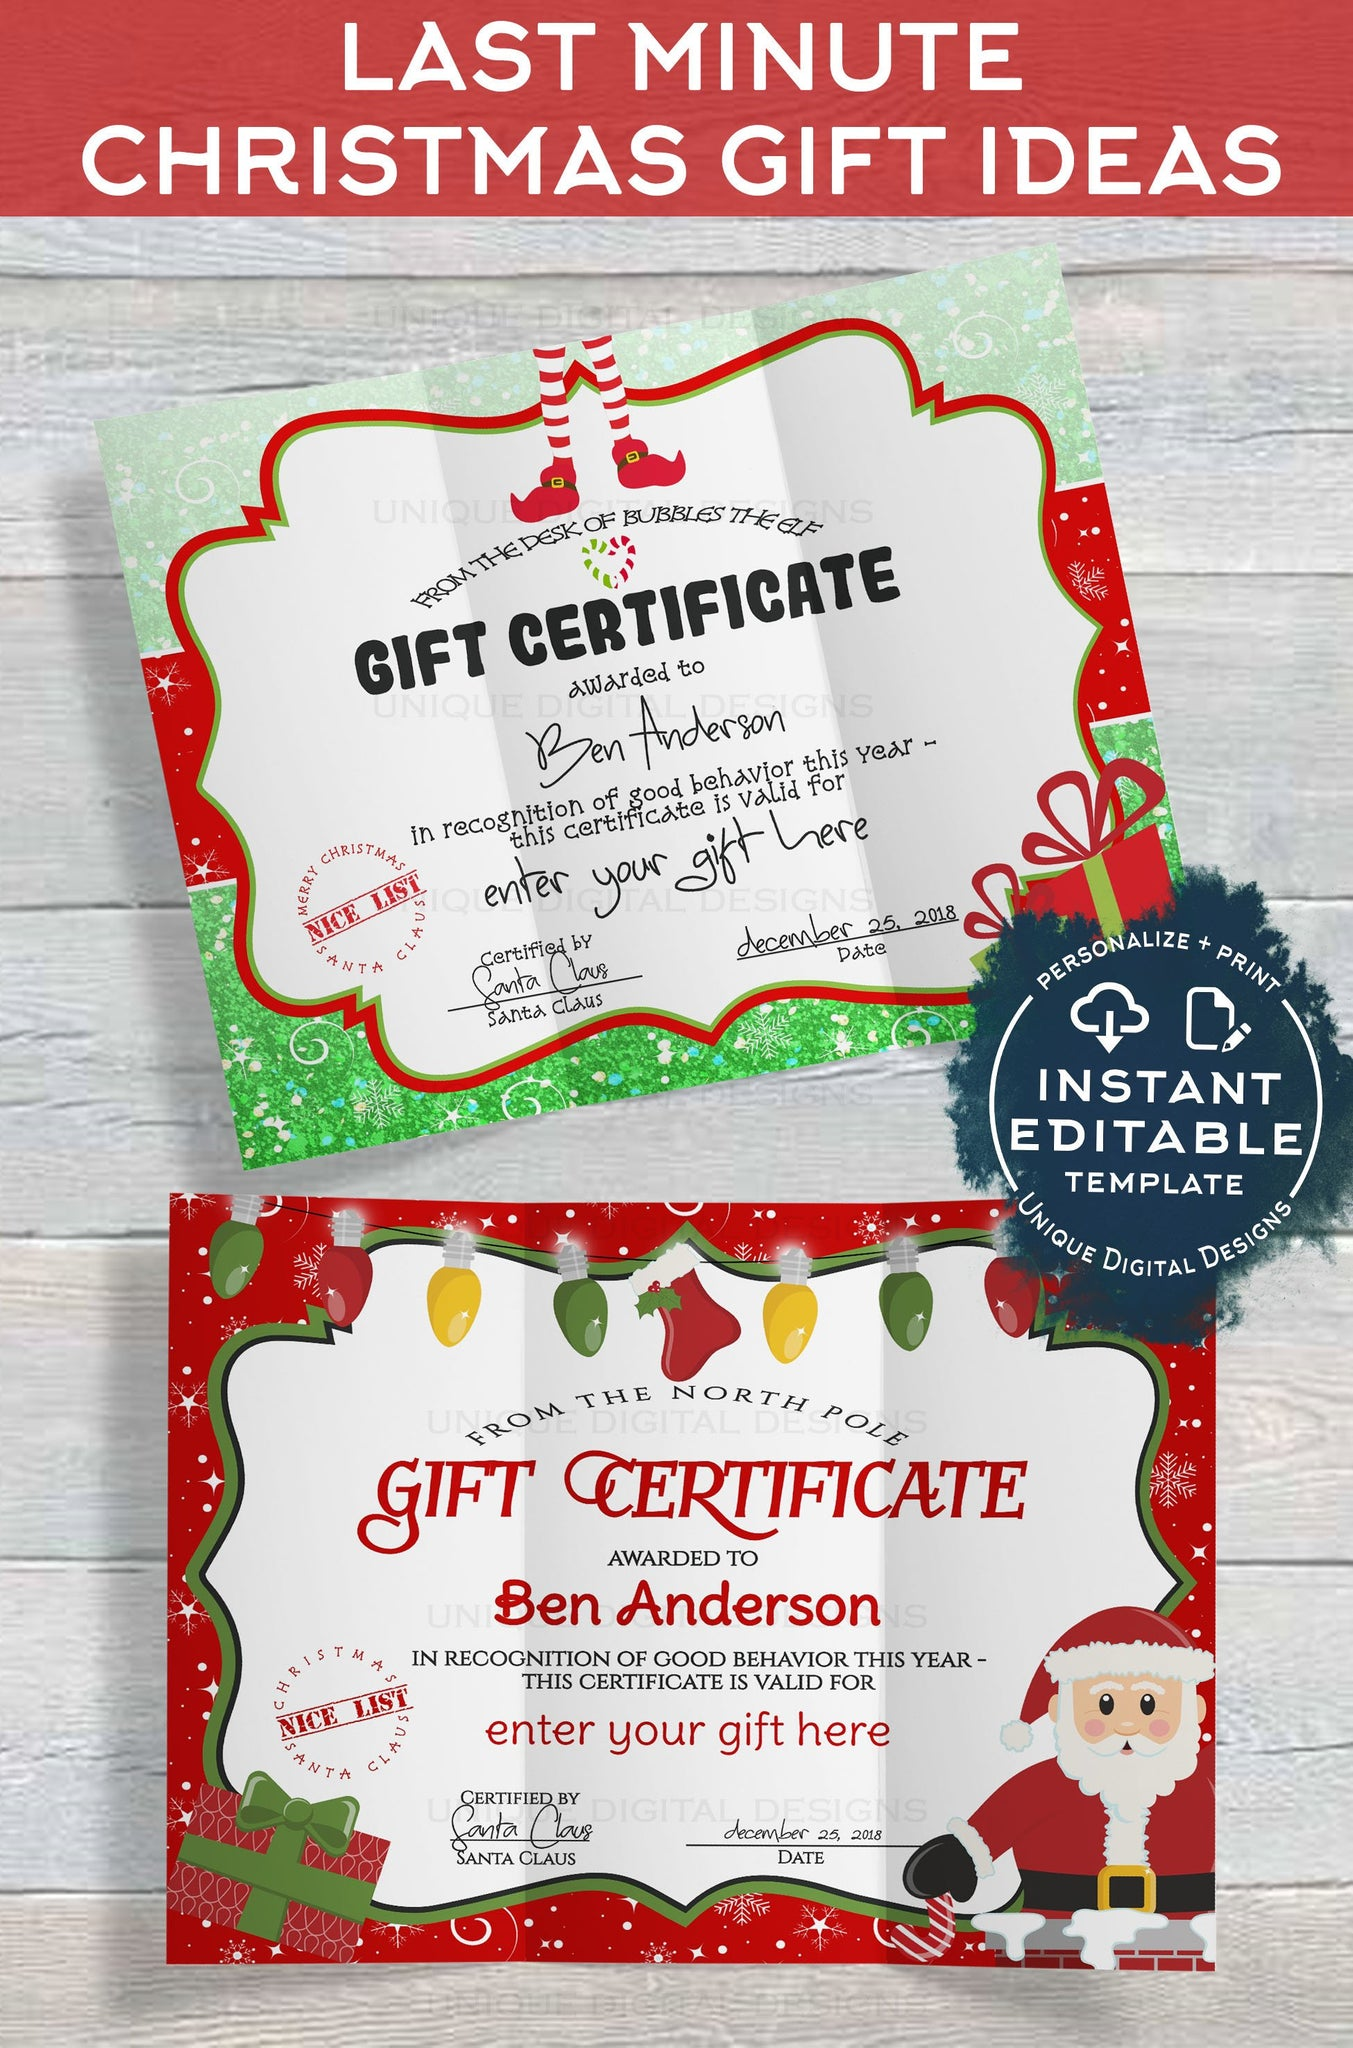 Christmas Gift Certificate Template.Gift Certificate Template Editable Gift Certificate From Santa Custom Santa Letter Last Minute Christmas Gift Printable Instant Download